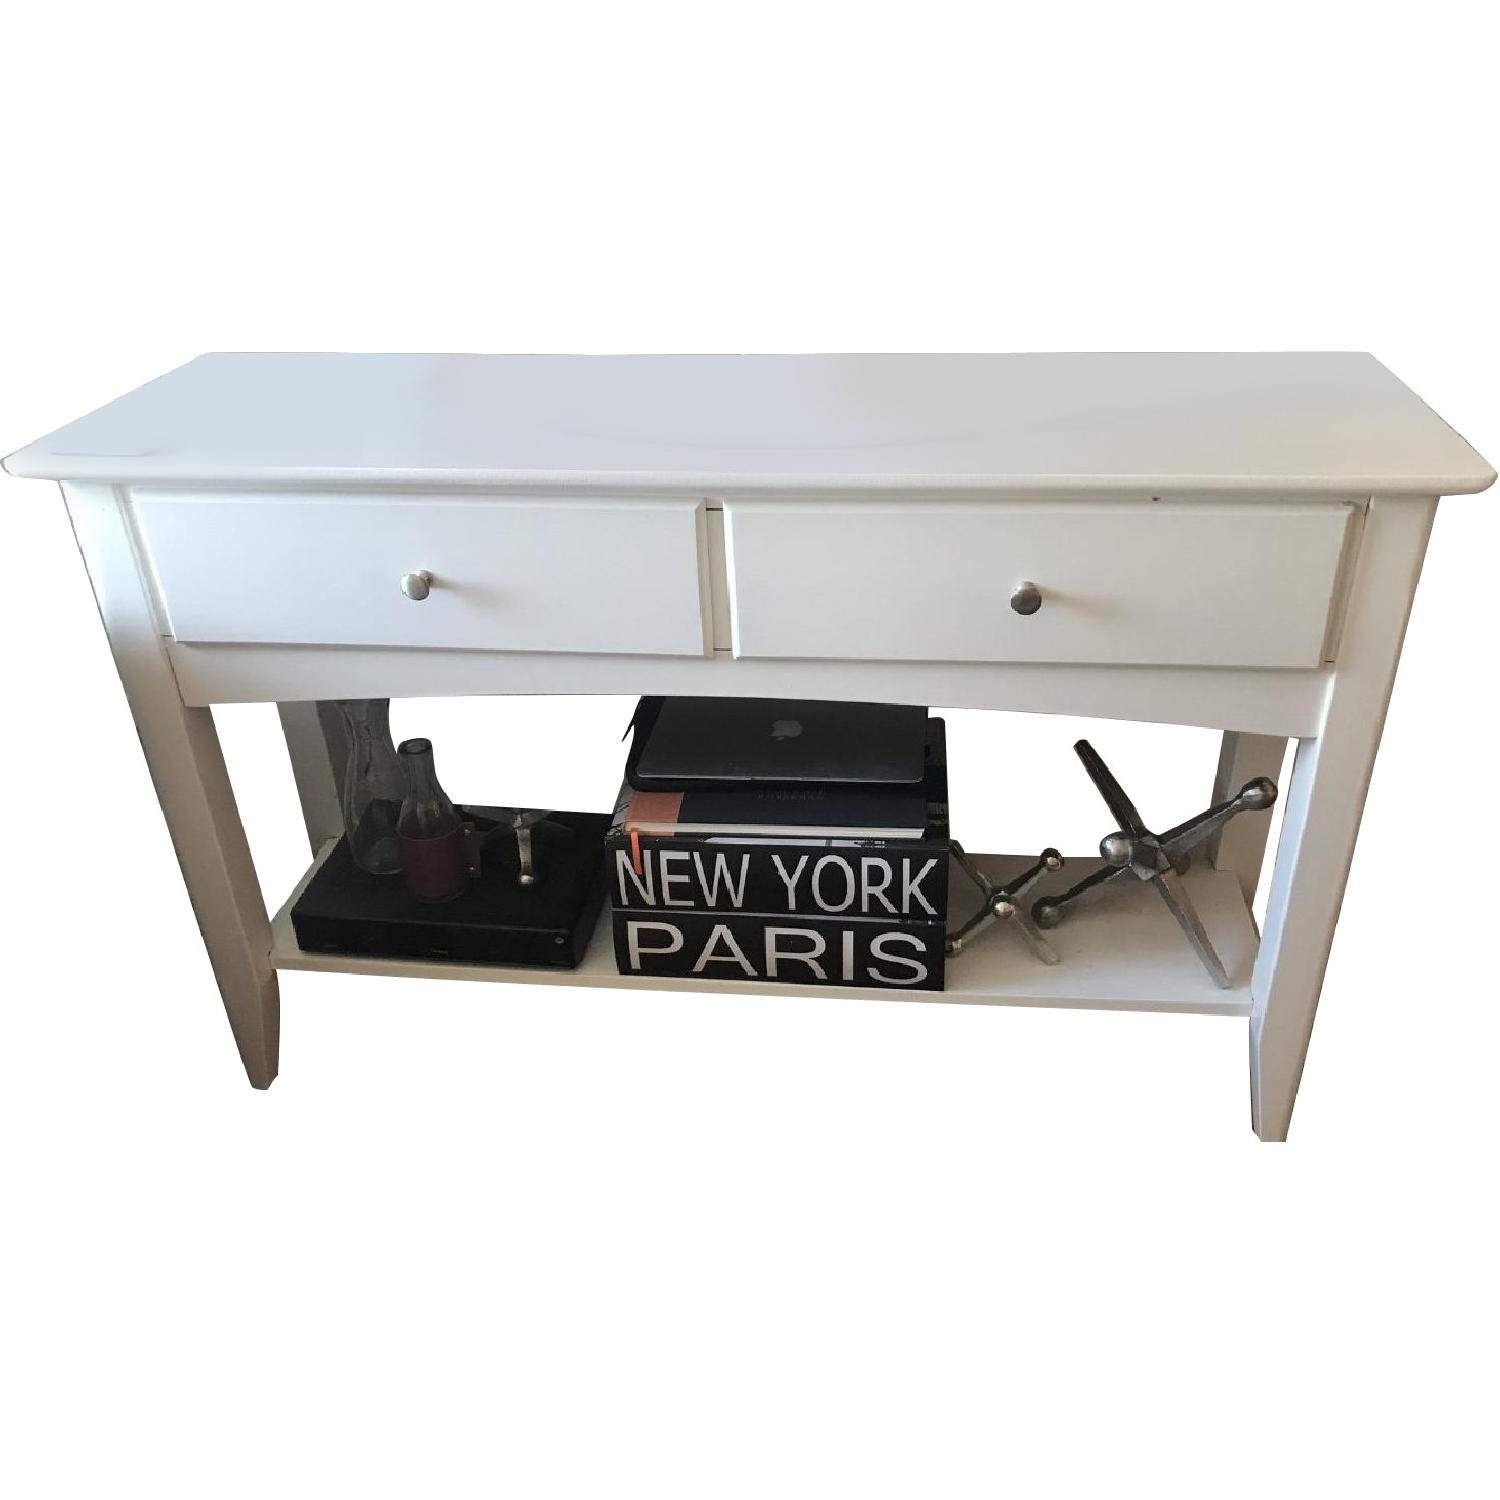 White Solid Wood TV Stand/ End Table